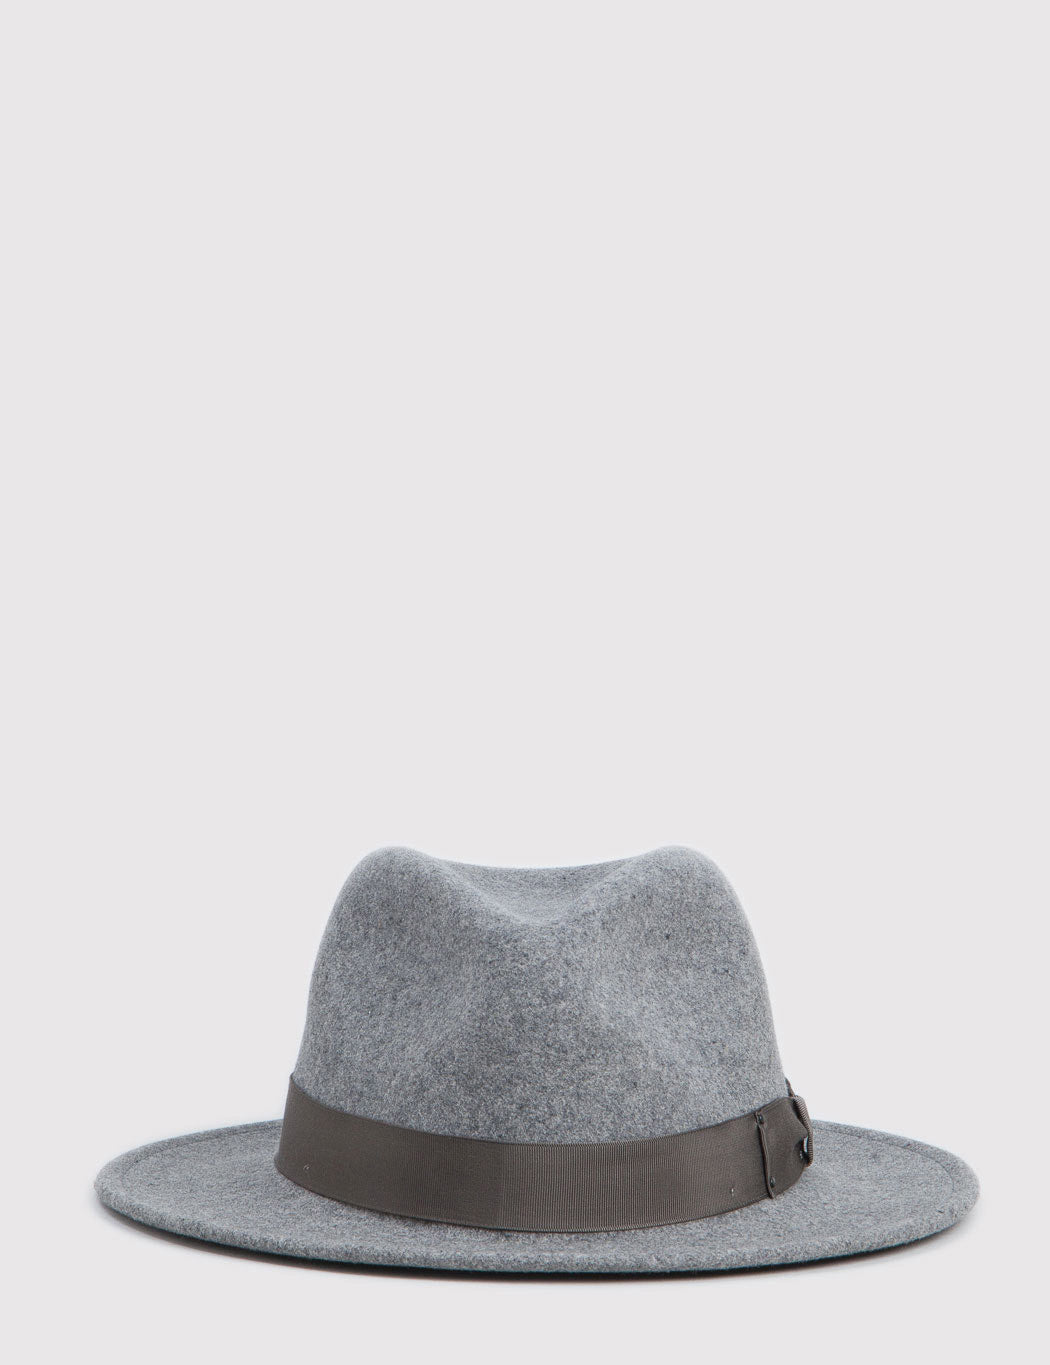 Bailey Curtis Widebrim Fedora Hat - Oxford Grey Mix